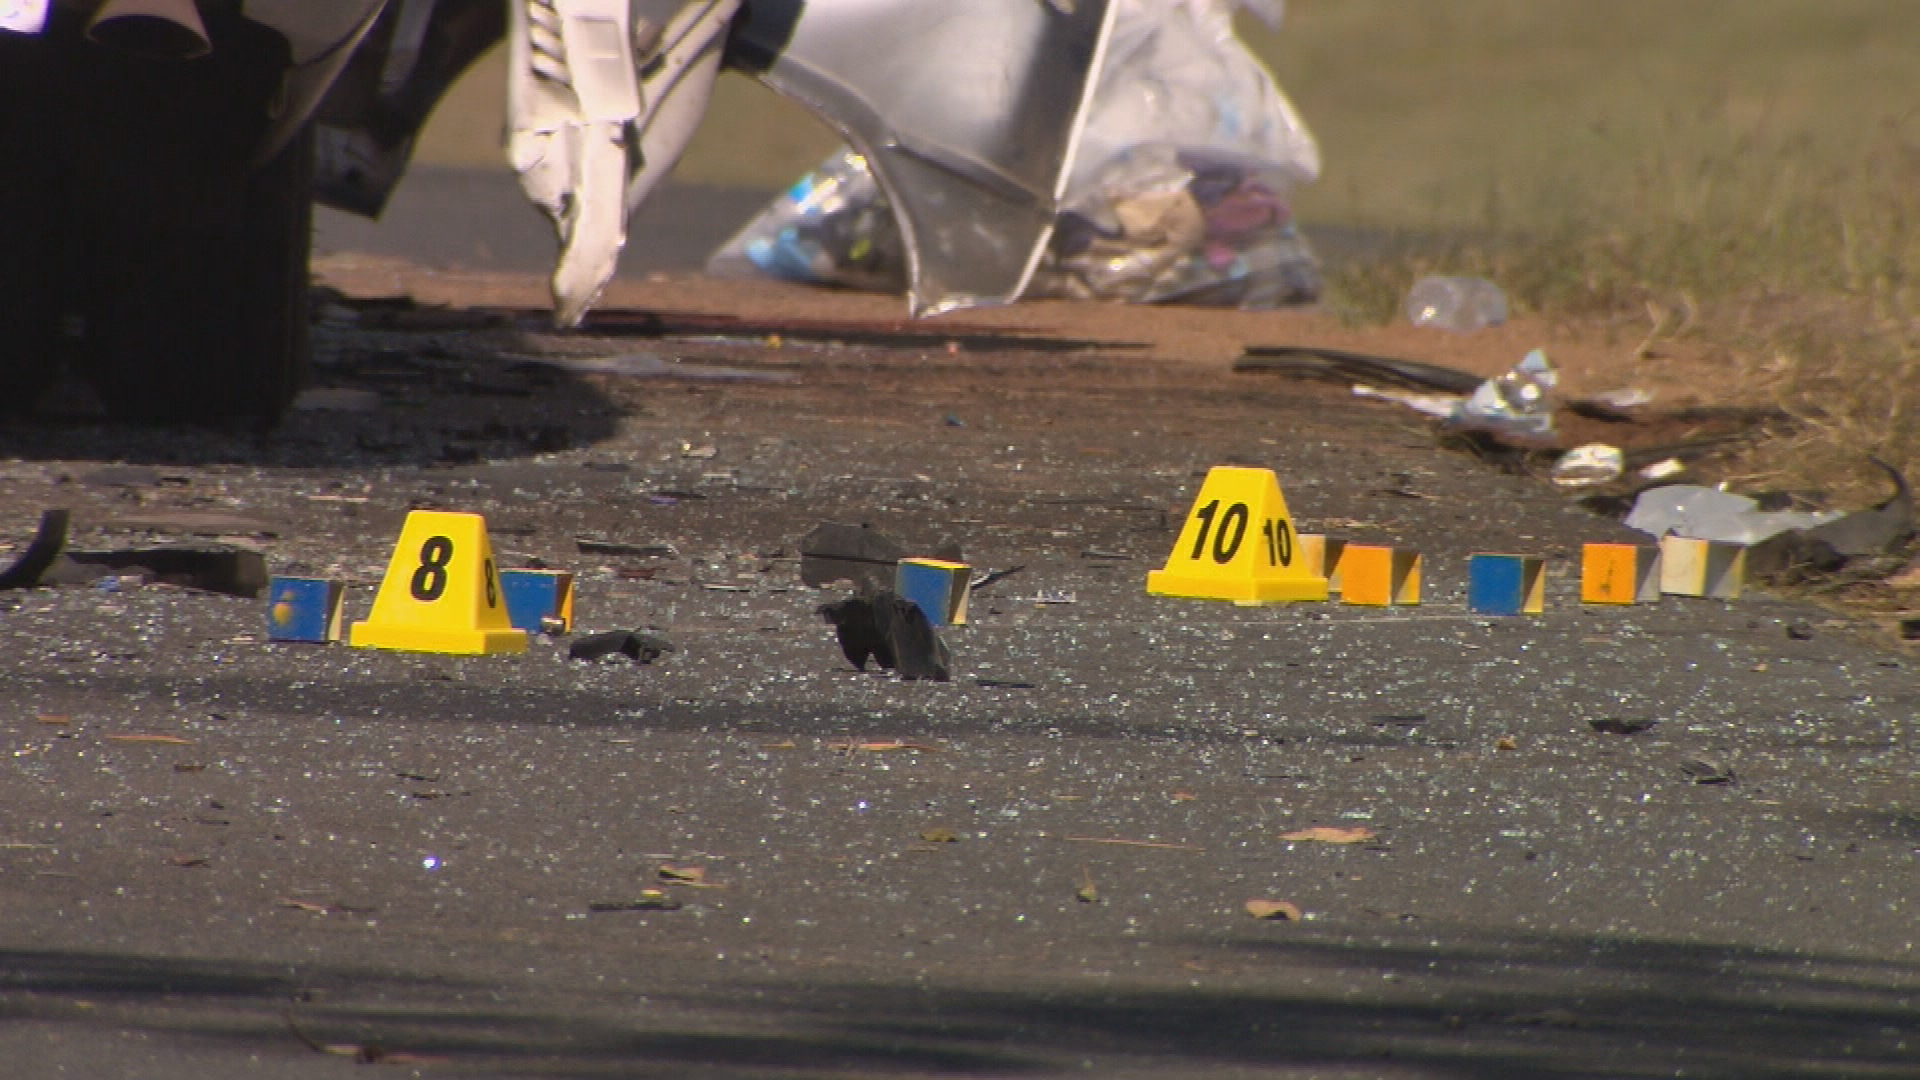 Glass and debris were strewn across the road, which was closed for most of the day.